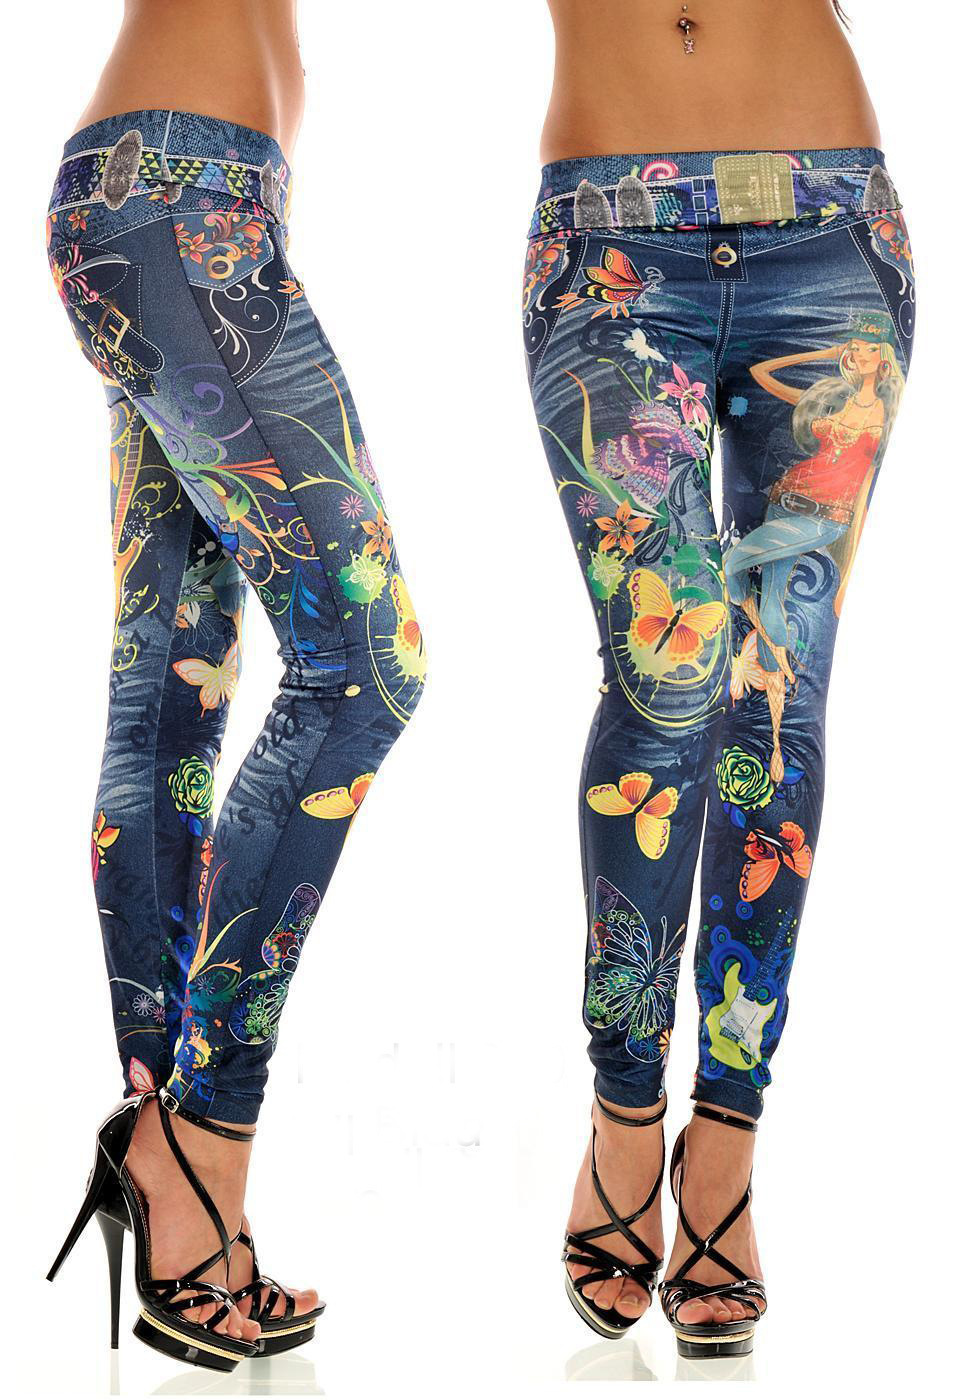 Leggings and Leg Fashion Superstore. At Only Leggings, we love leg fashion and bringing you the very best selection of high quality leggings, jeans, shorts, bodysuits, pants and .